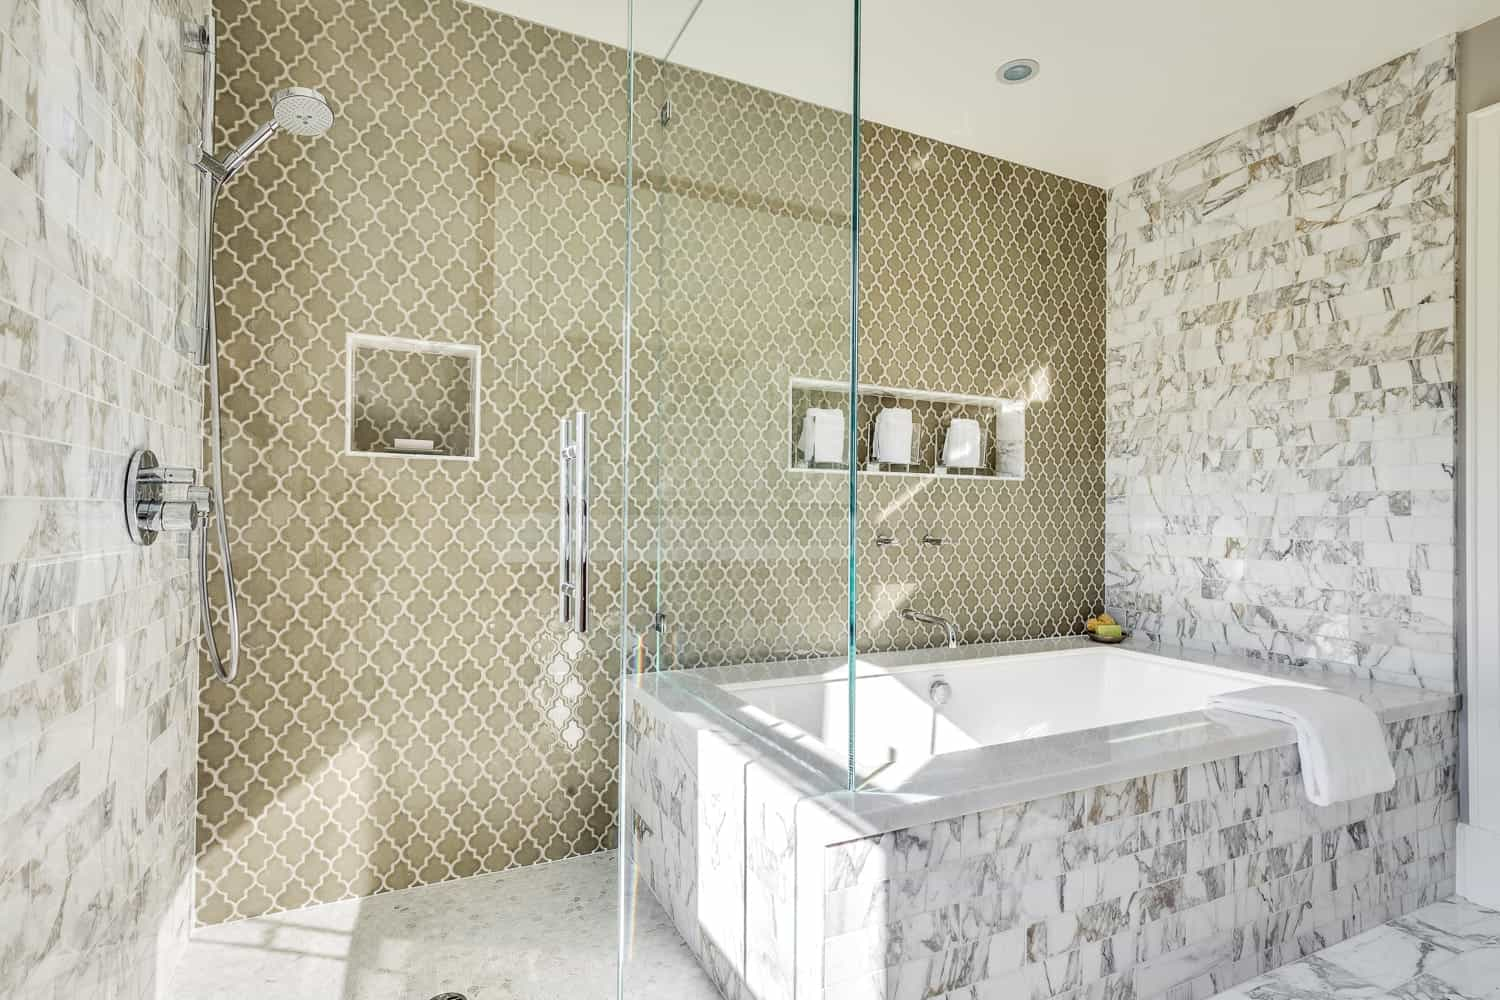 Large Modern Bathroom Featuring Combination With A Glass Shower And Jacuzzi Tub With Patterned Tile Accent Wall (View 7 of 16)